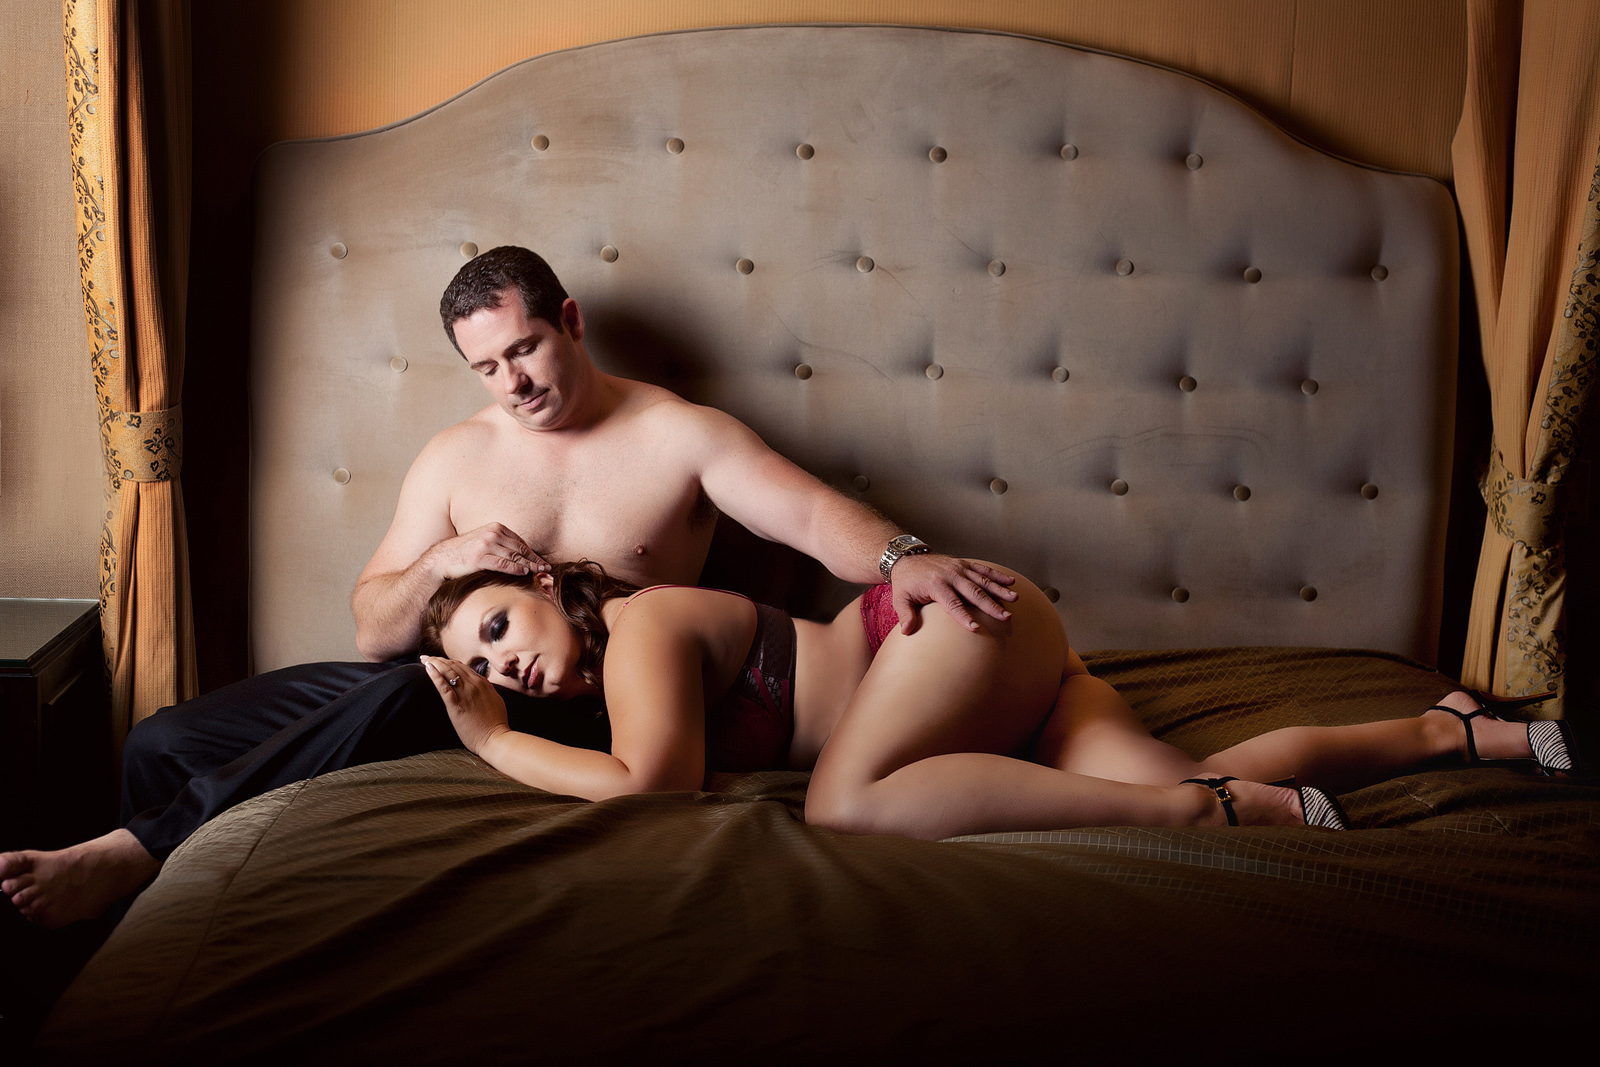 beautiful couples boudoir photography pose.